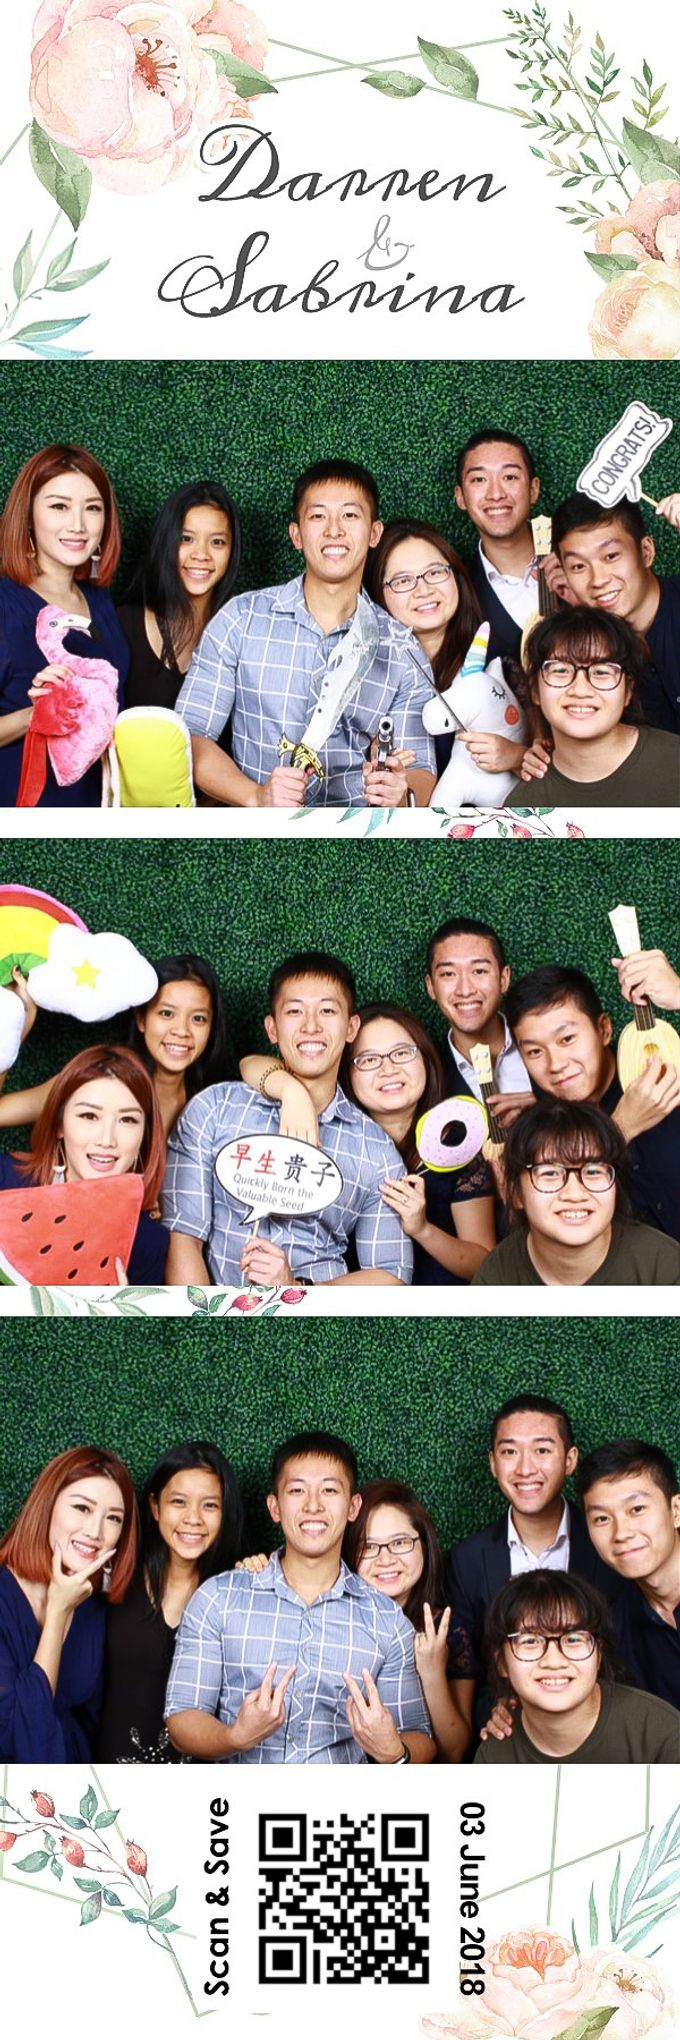 Darren & Sabrina Wedding Photo Booth by Cloud Booth - 006